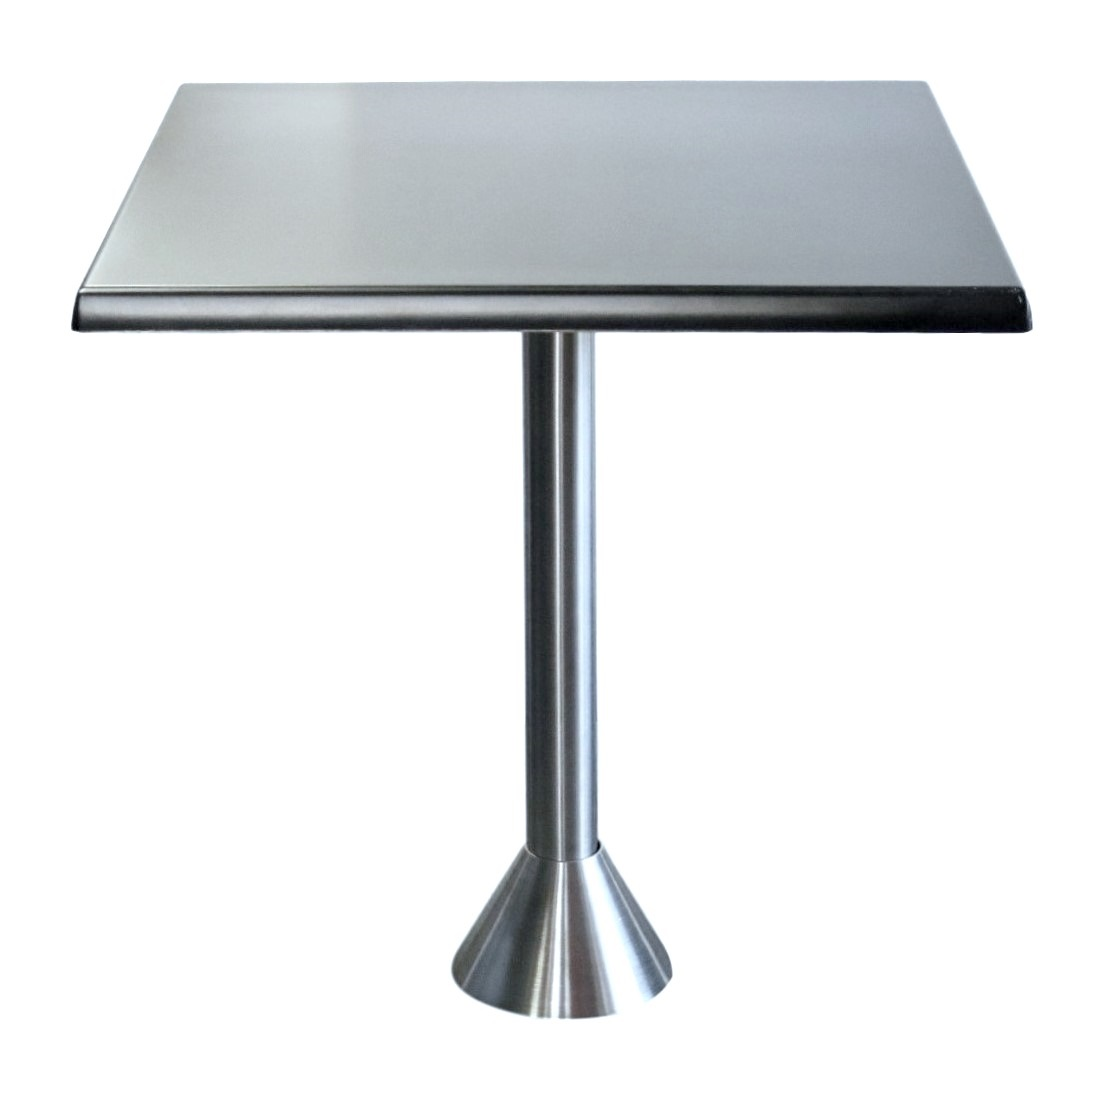 Rega Table Base Square Table